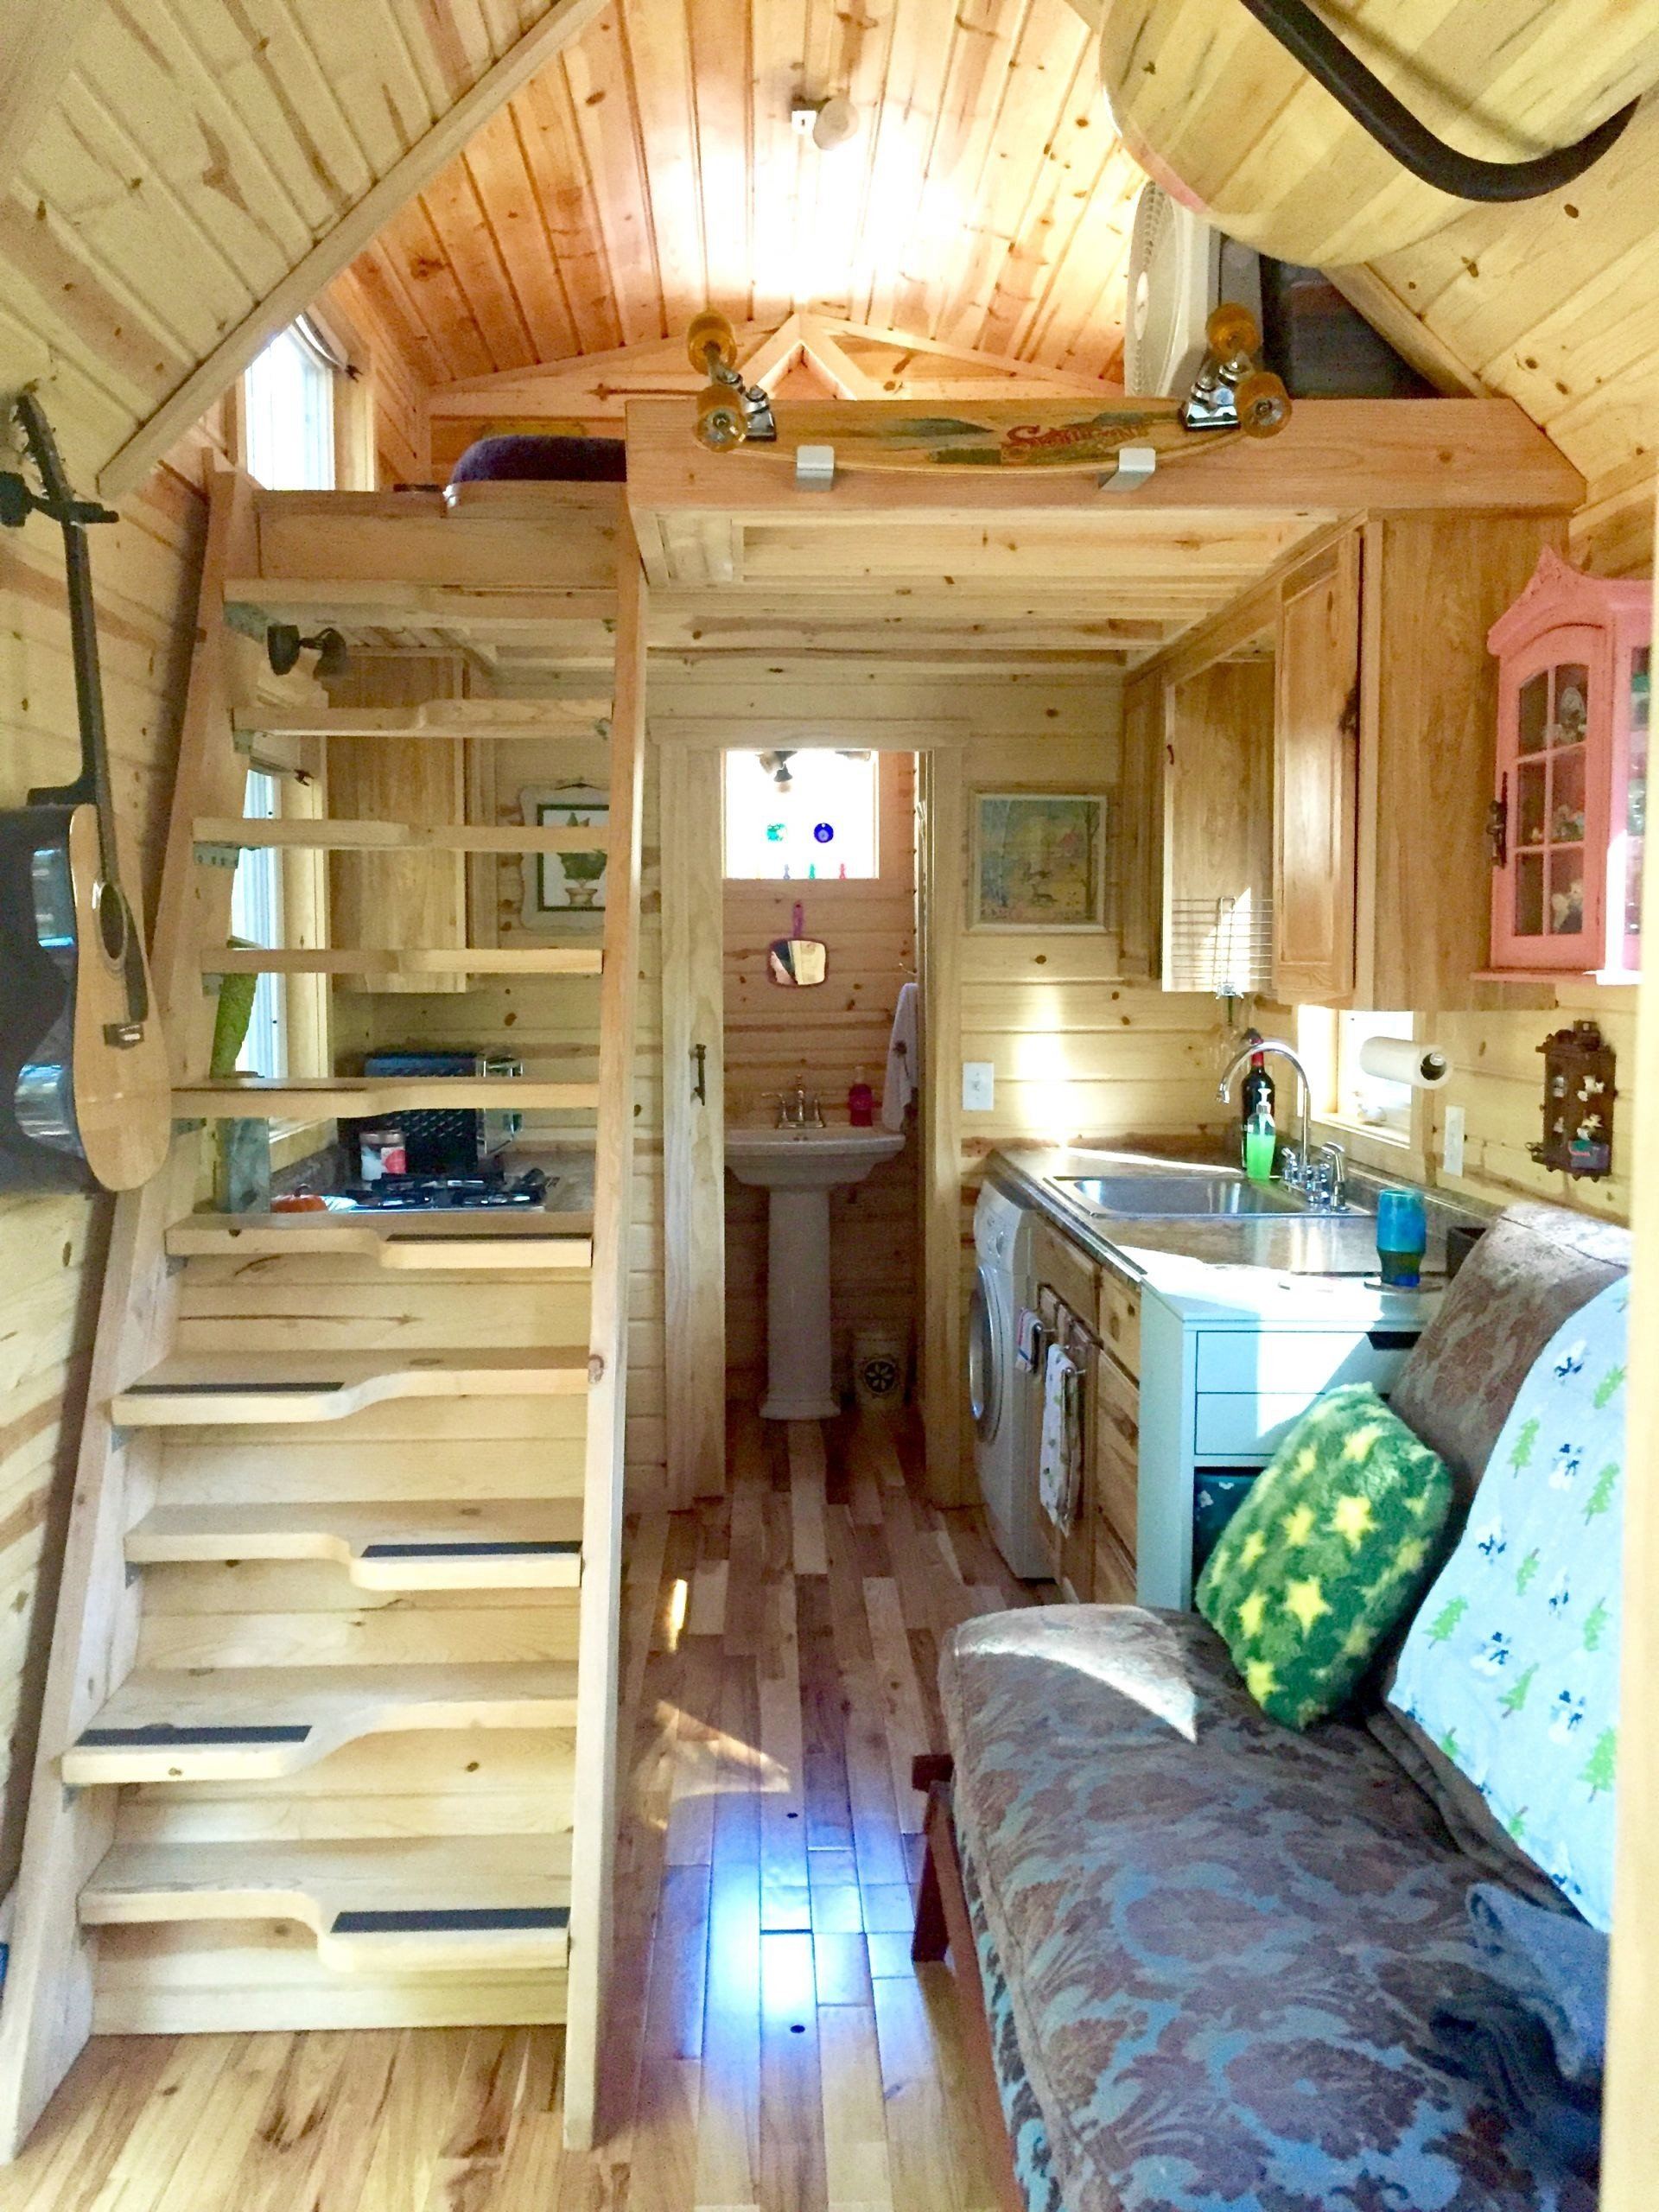 10 Beautiful Small Cabin Interior Design Ideas small cabin interior design ideas beautiful nicki s colorful